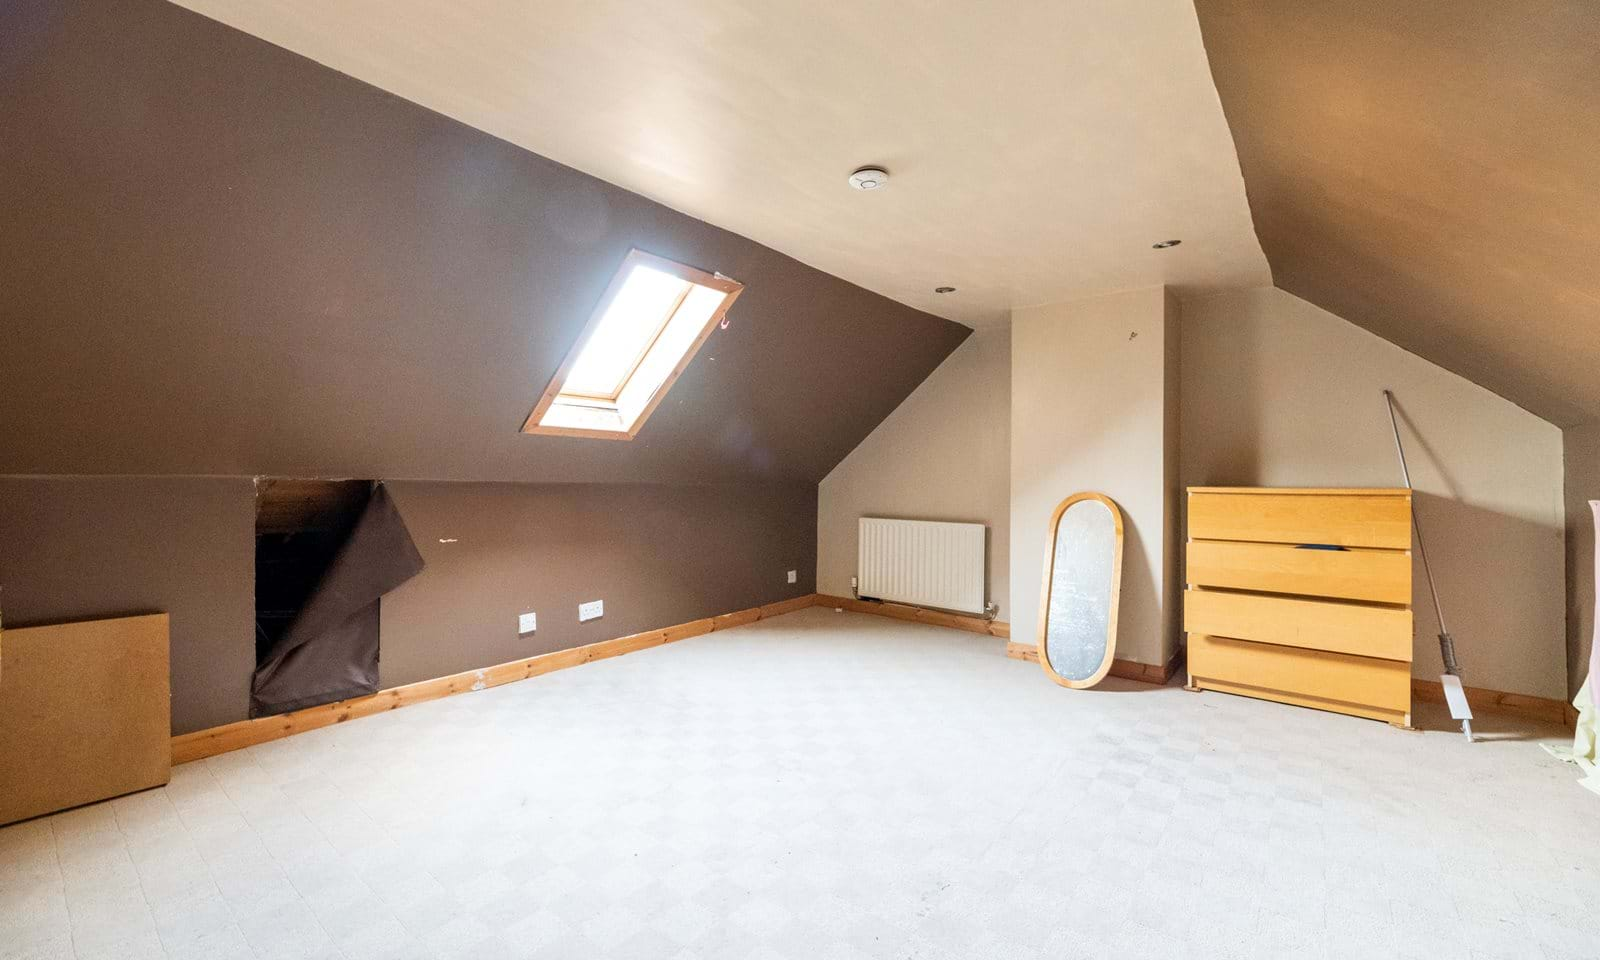 Attic/Storage Area